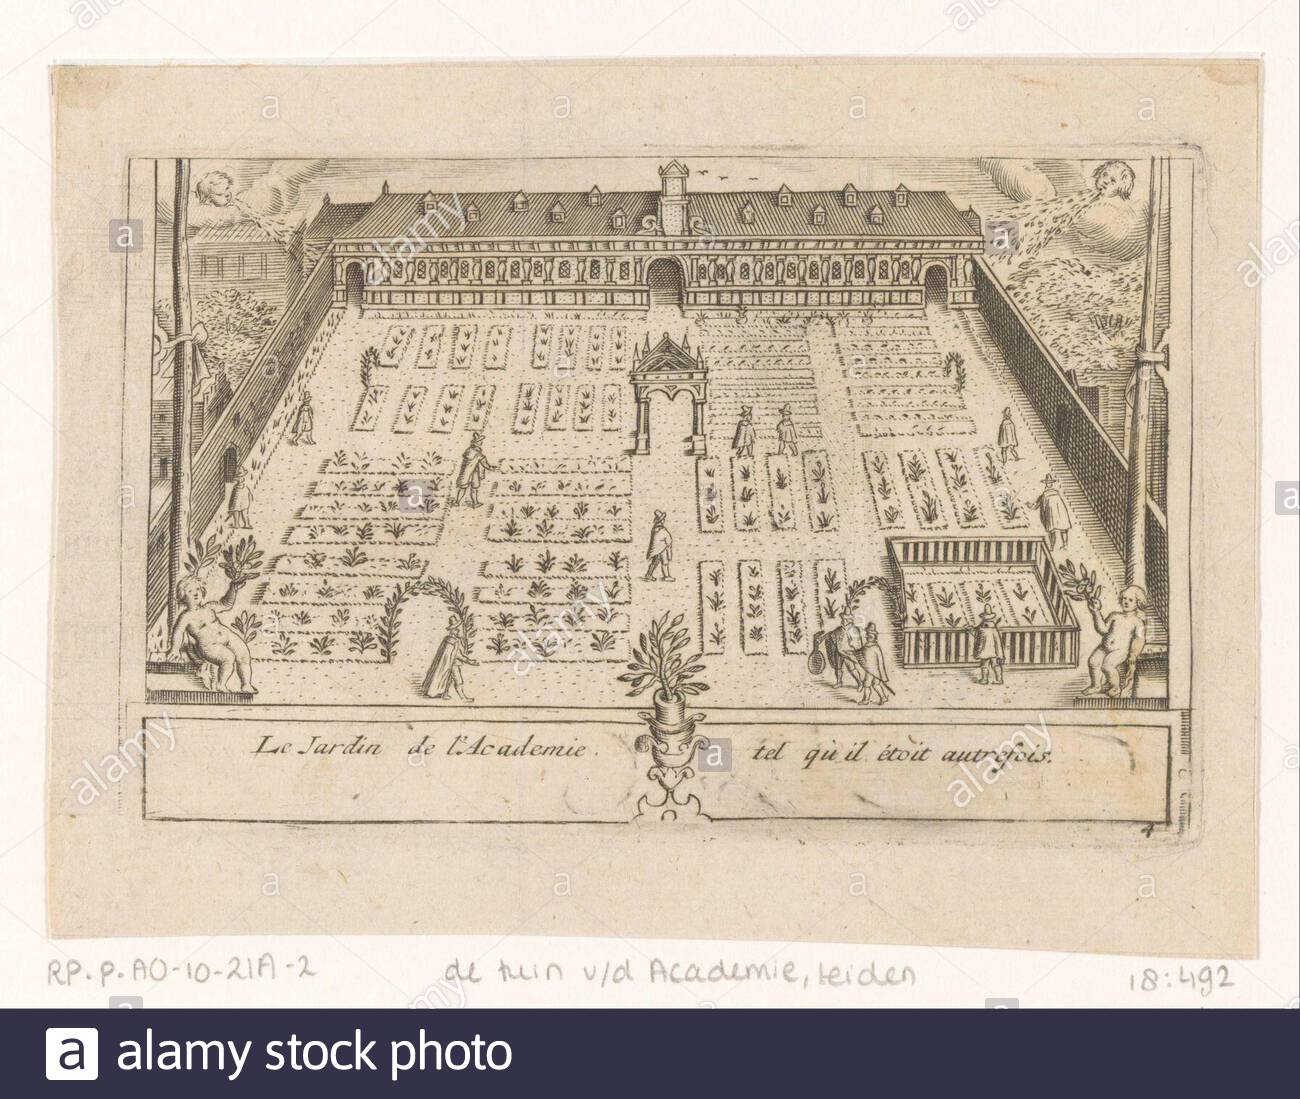 view of the hortus botanicus in leiden located behind the academy building as it looked somewhere after the old tower of the academy building was demolished for 1600 and before the new tower was built in 1670 bottom right numbered 4 manufacturer print maker anonymous publisher pieter van der aa i is possibly place manufacture leiden date 1712 material paper technique engra printing process measurements plate edge h 81 mm w 126 mmtoelichtingprent also used in les delices the leide celebres une des villes de leurope qui contiennent une description the exact son a 2B6PHHX